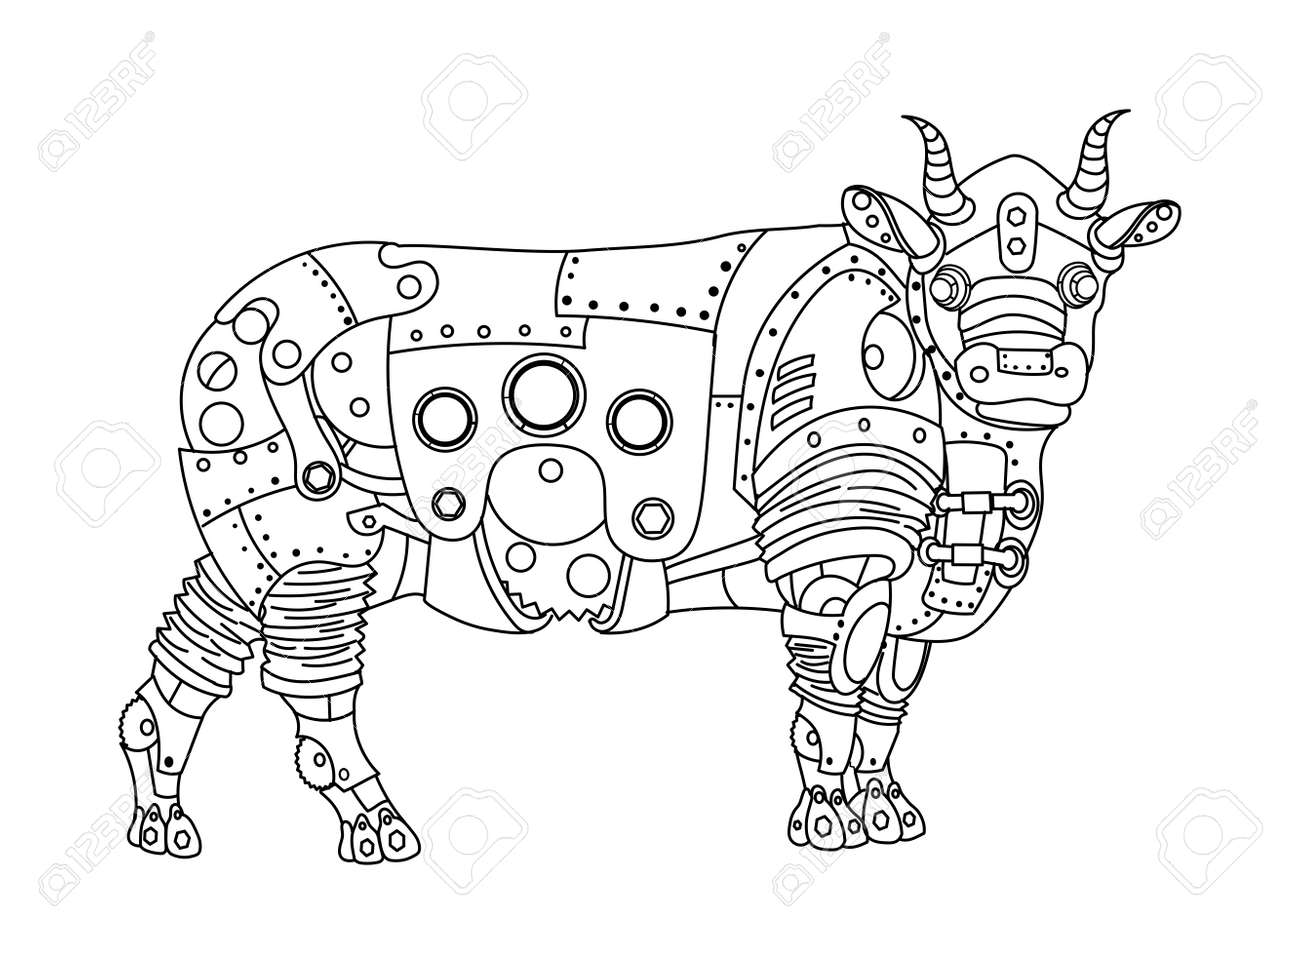 ste unk style bull mechanical animal coloring book for adult  ste unk style bull mechanical animal coloring book for adult vector illustration stock vector